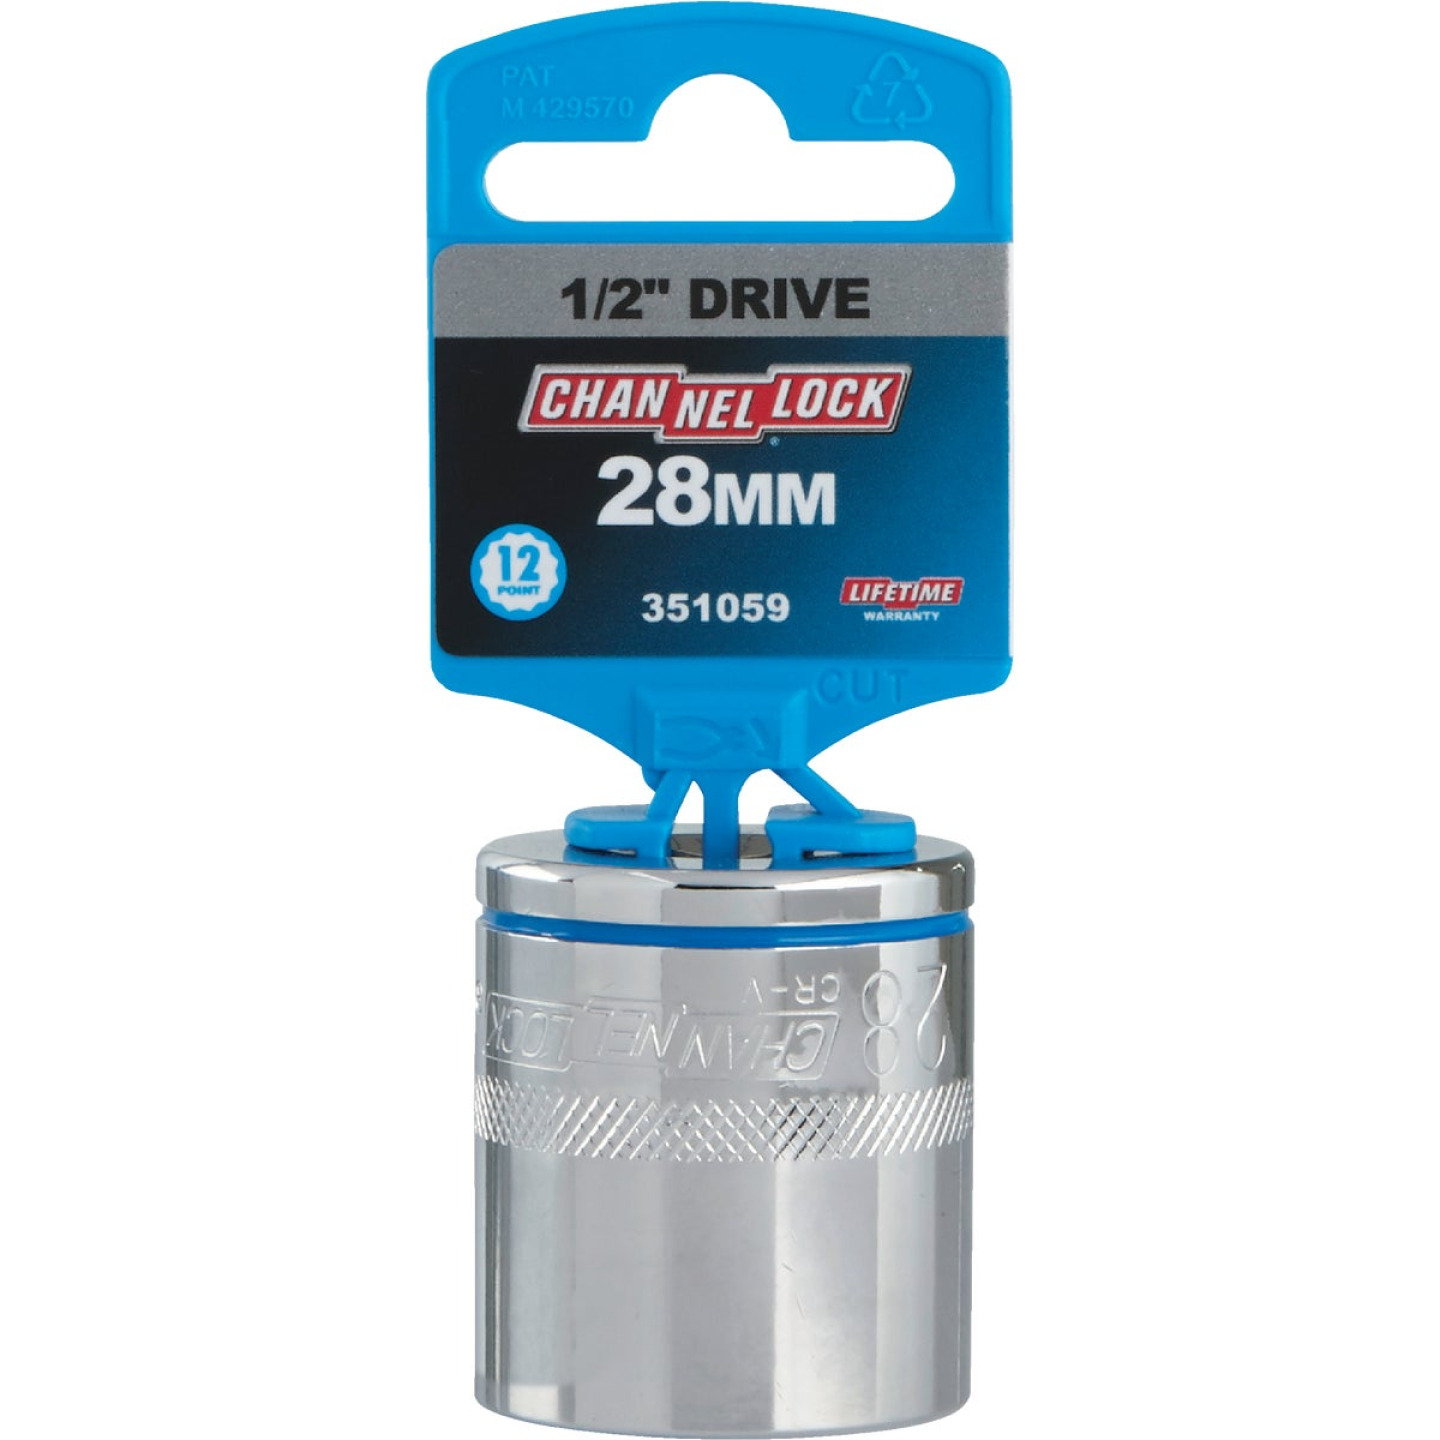 Channellock 1/2 In. Drive 28 mm 12-Point Shallow Metric Socket Image 2